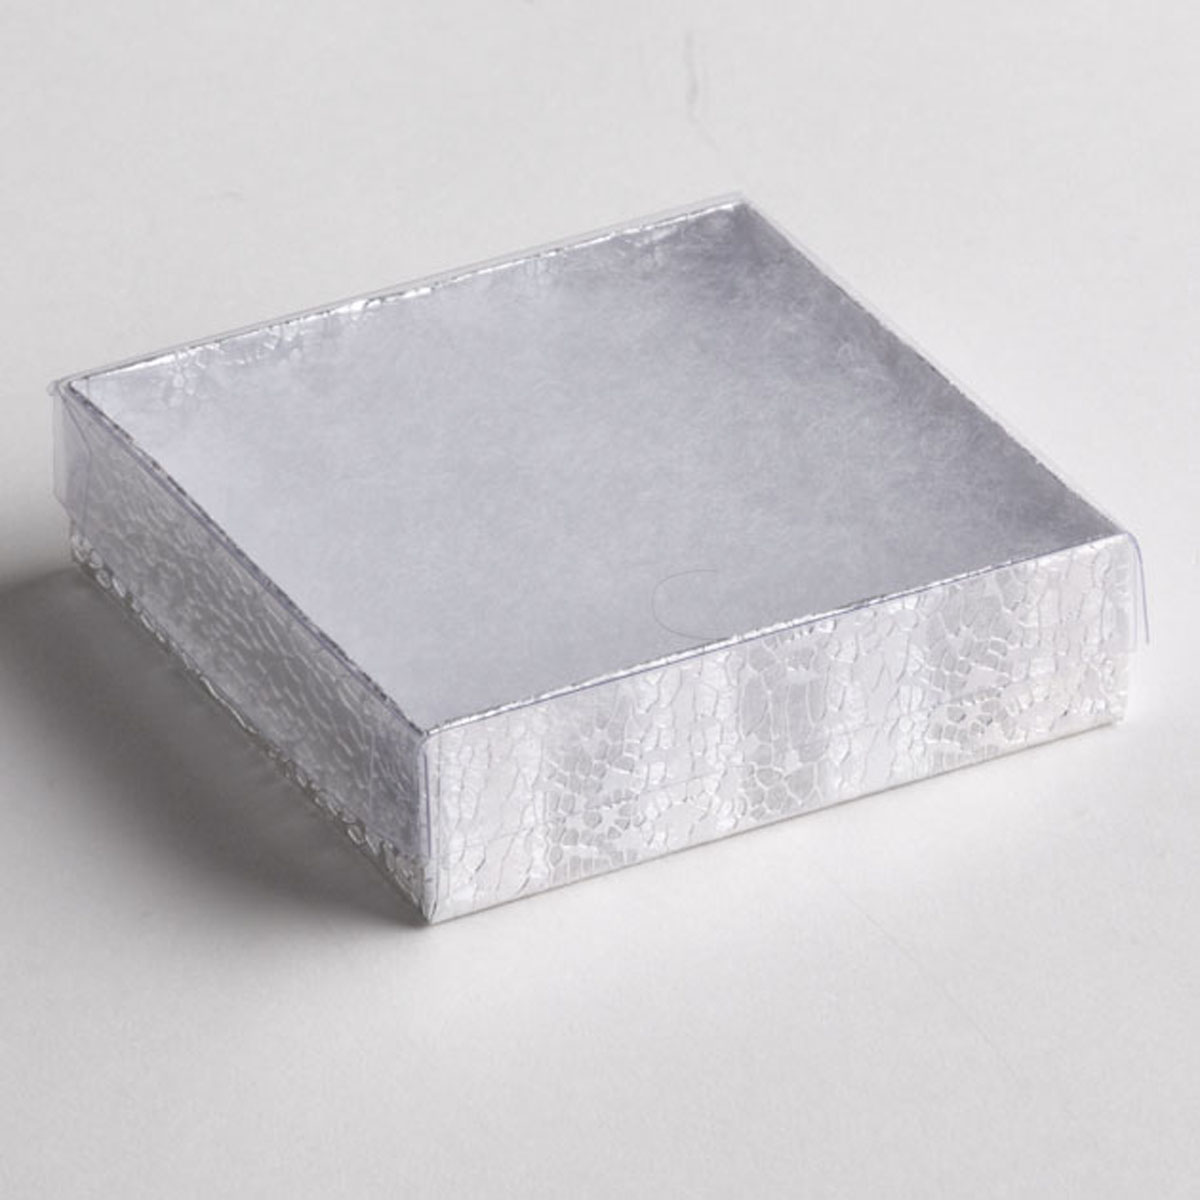 Clear Box Clear Top Silver Square Boxes 100 Pcs A Andb Store Fixtures